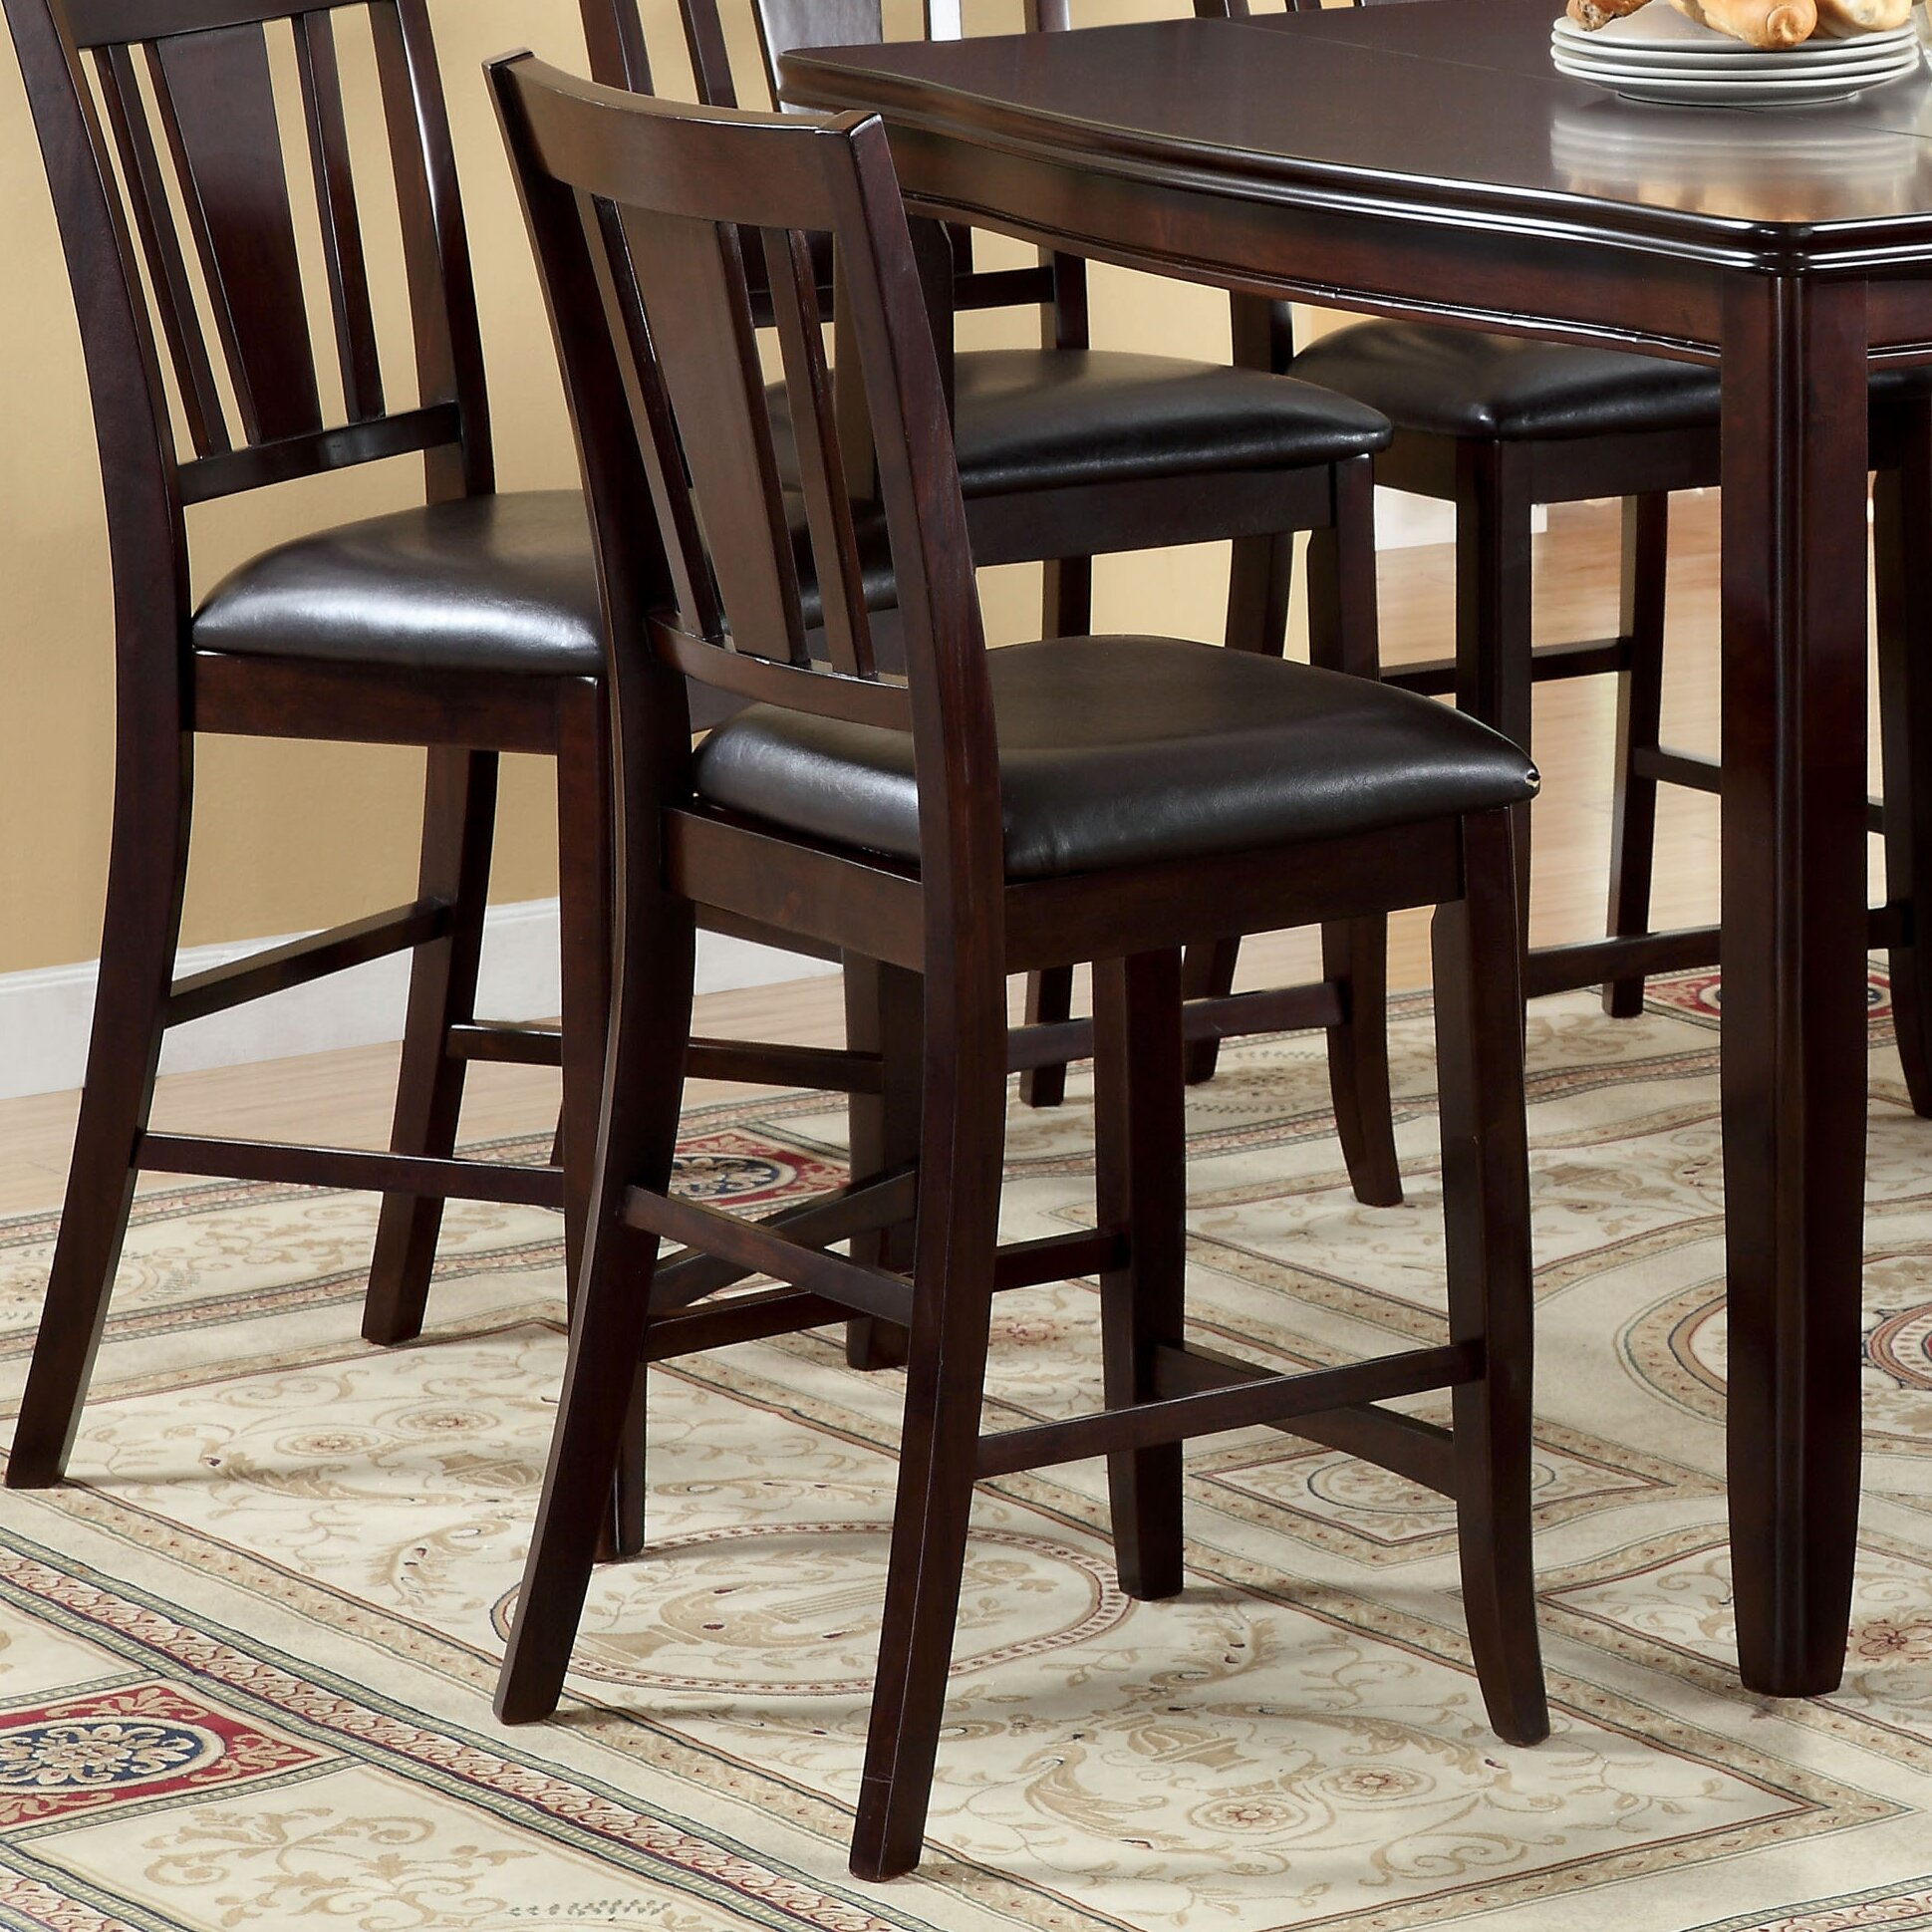 7 Piece Counter Height Dining Room Sets: Nappa 7 Piece Counter Height Dining Set